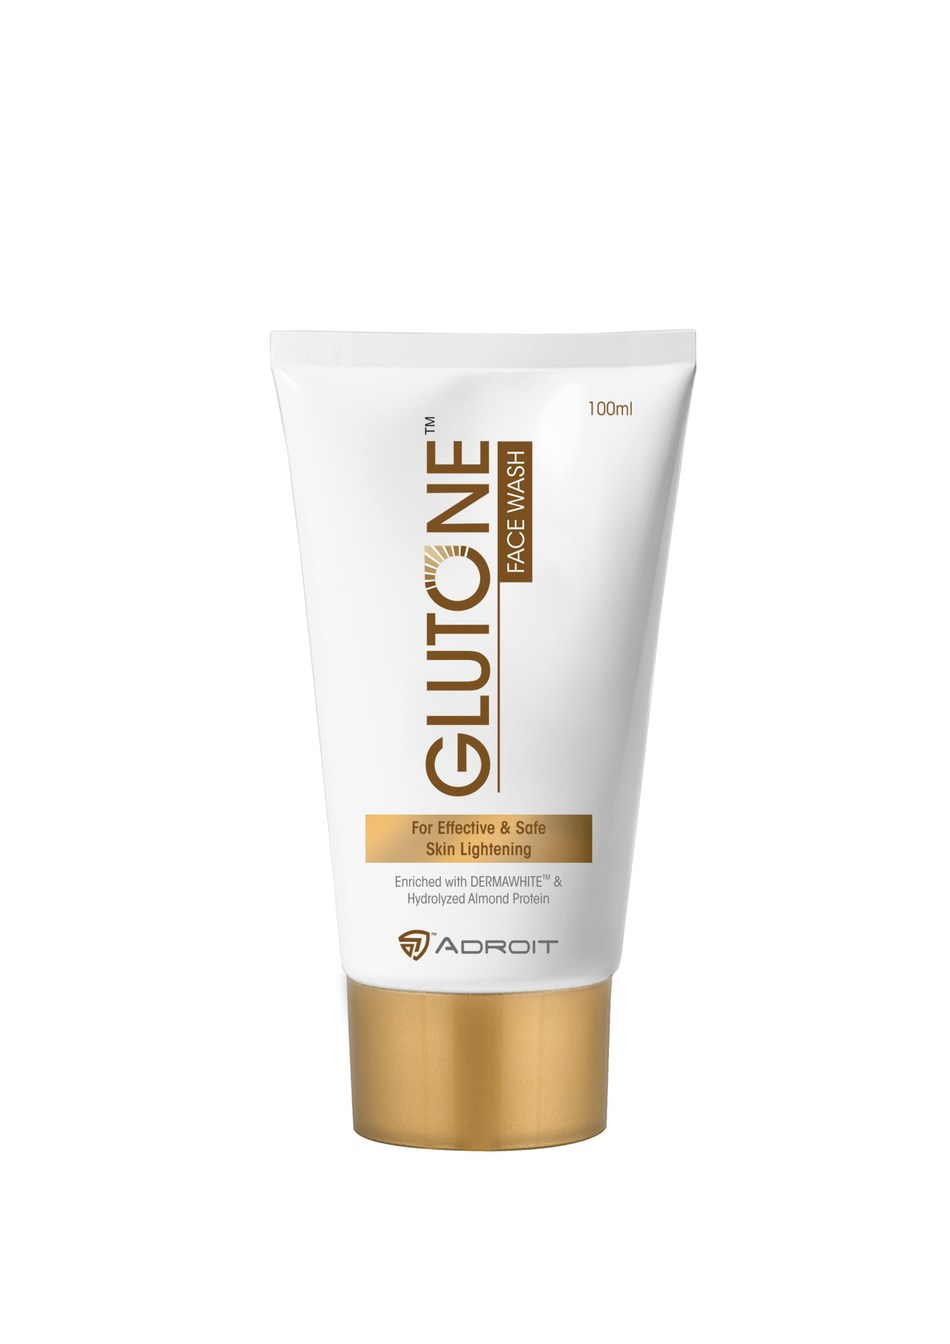 Get Healthy and Glowing Skin With Glutone Face Wash - The Only